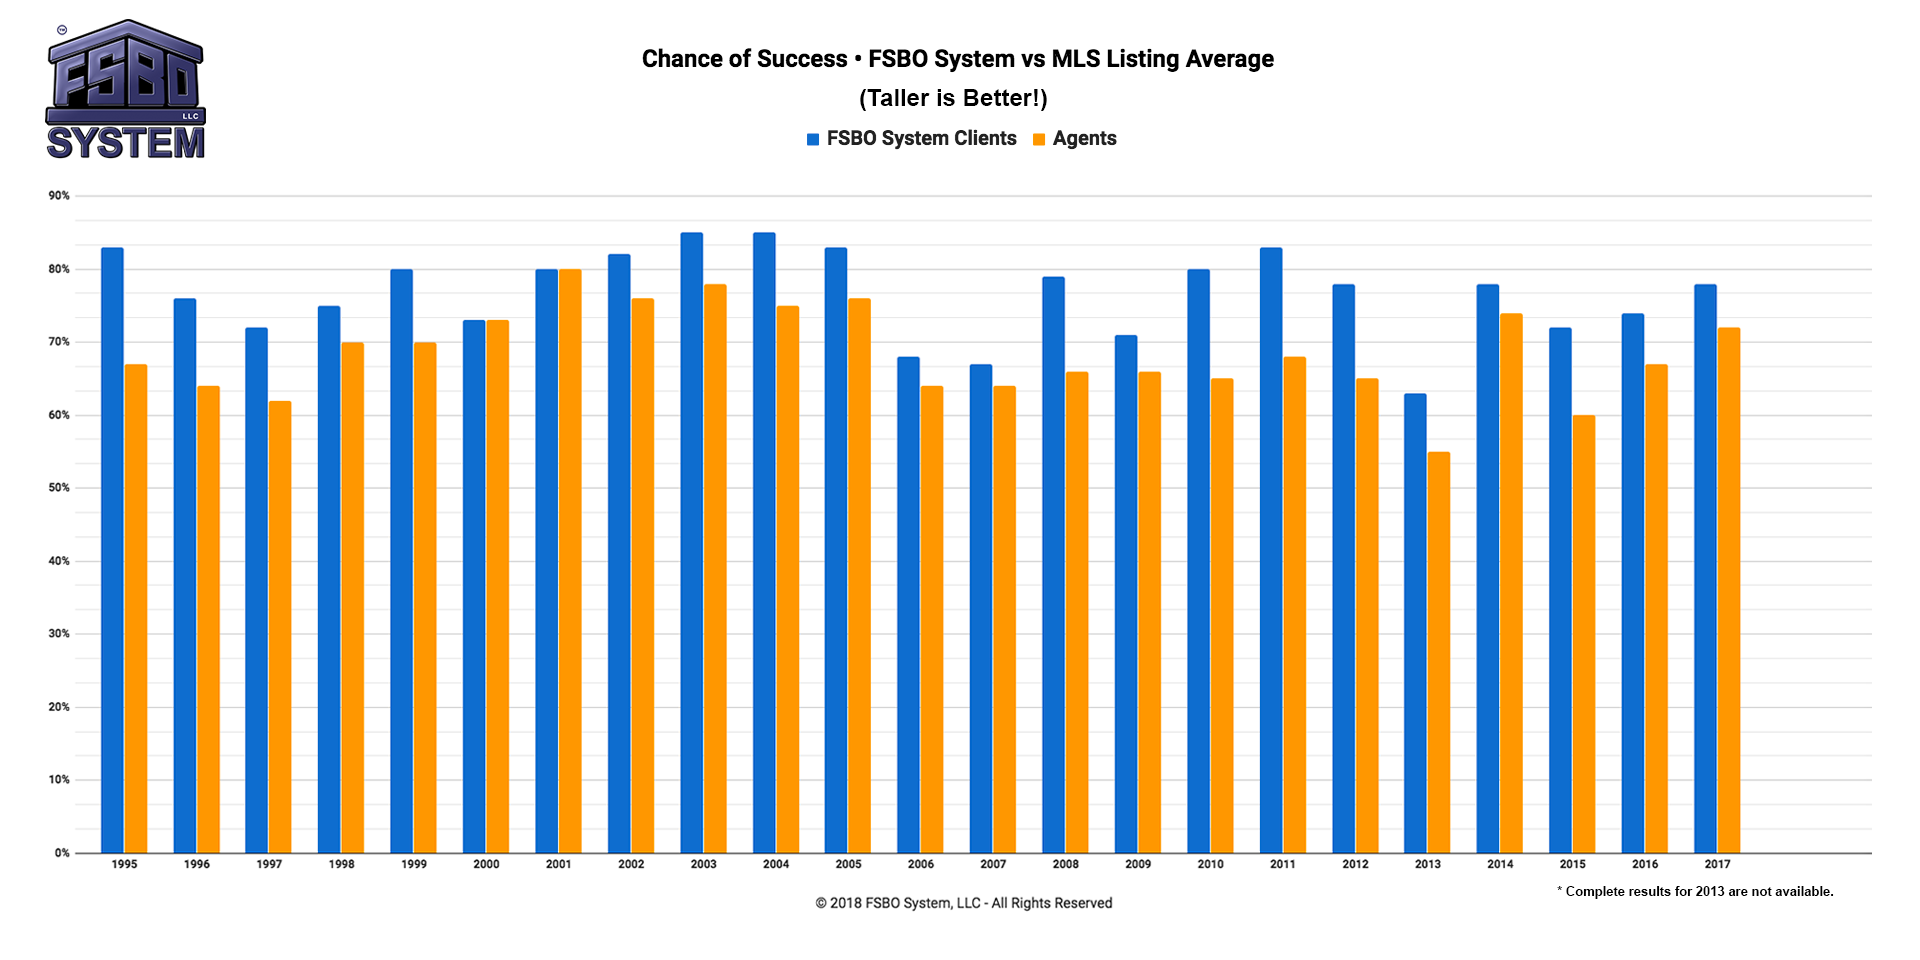 Chance-of-Success-FSBO-System-vs-MLS-Listing-Average-2018